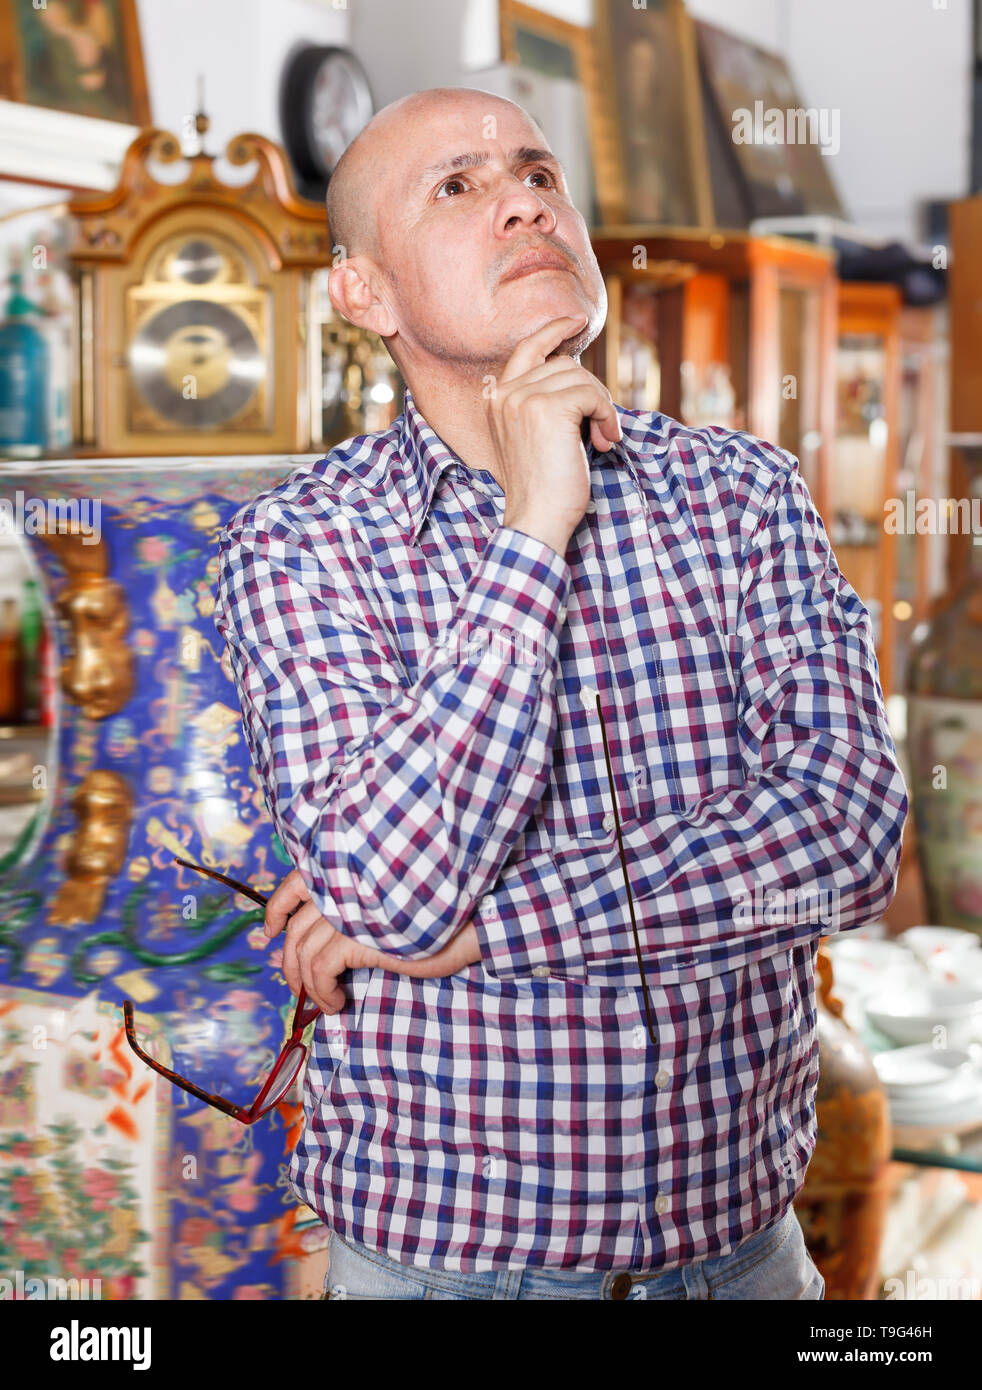 Intelligent male carefully examining antiques in store - Stock Image